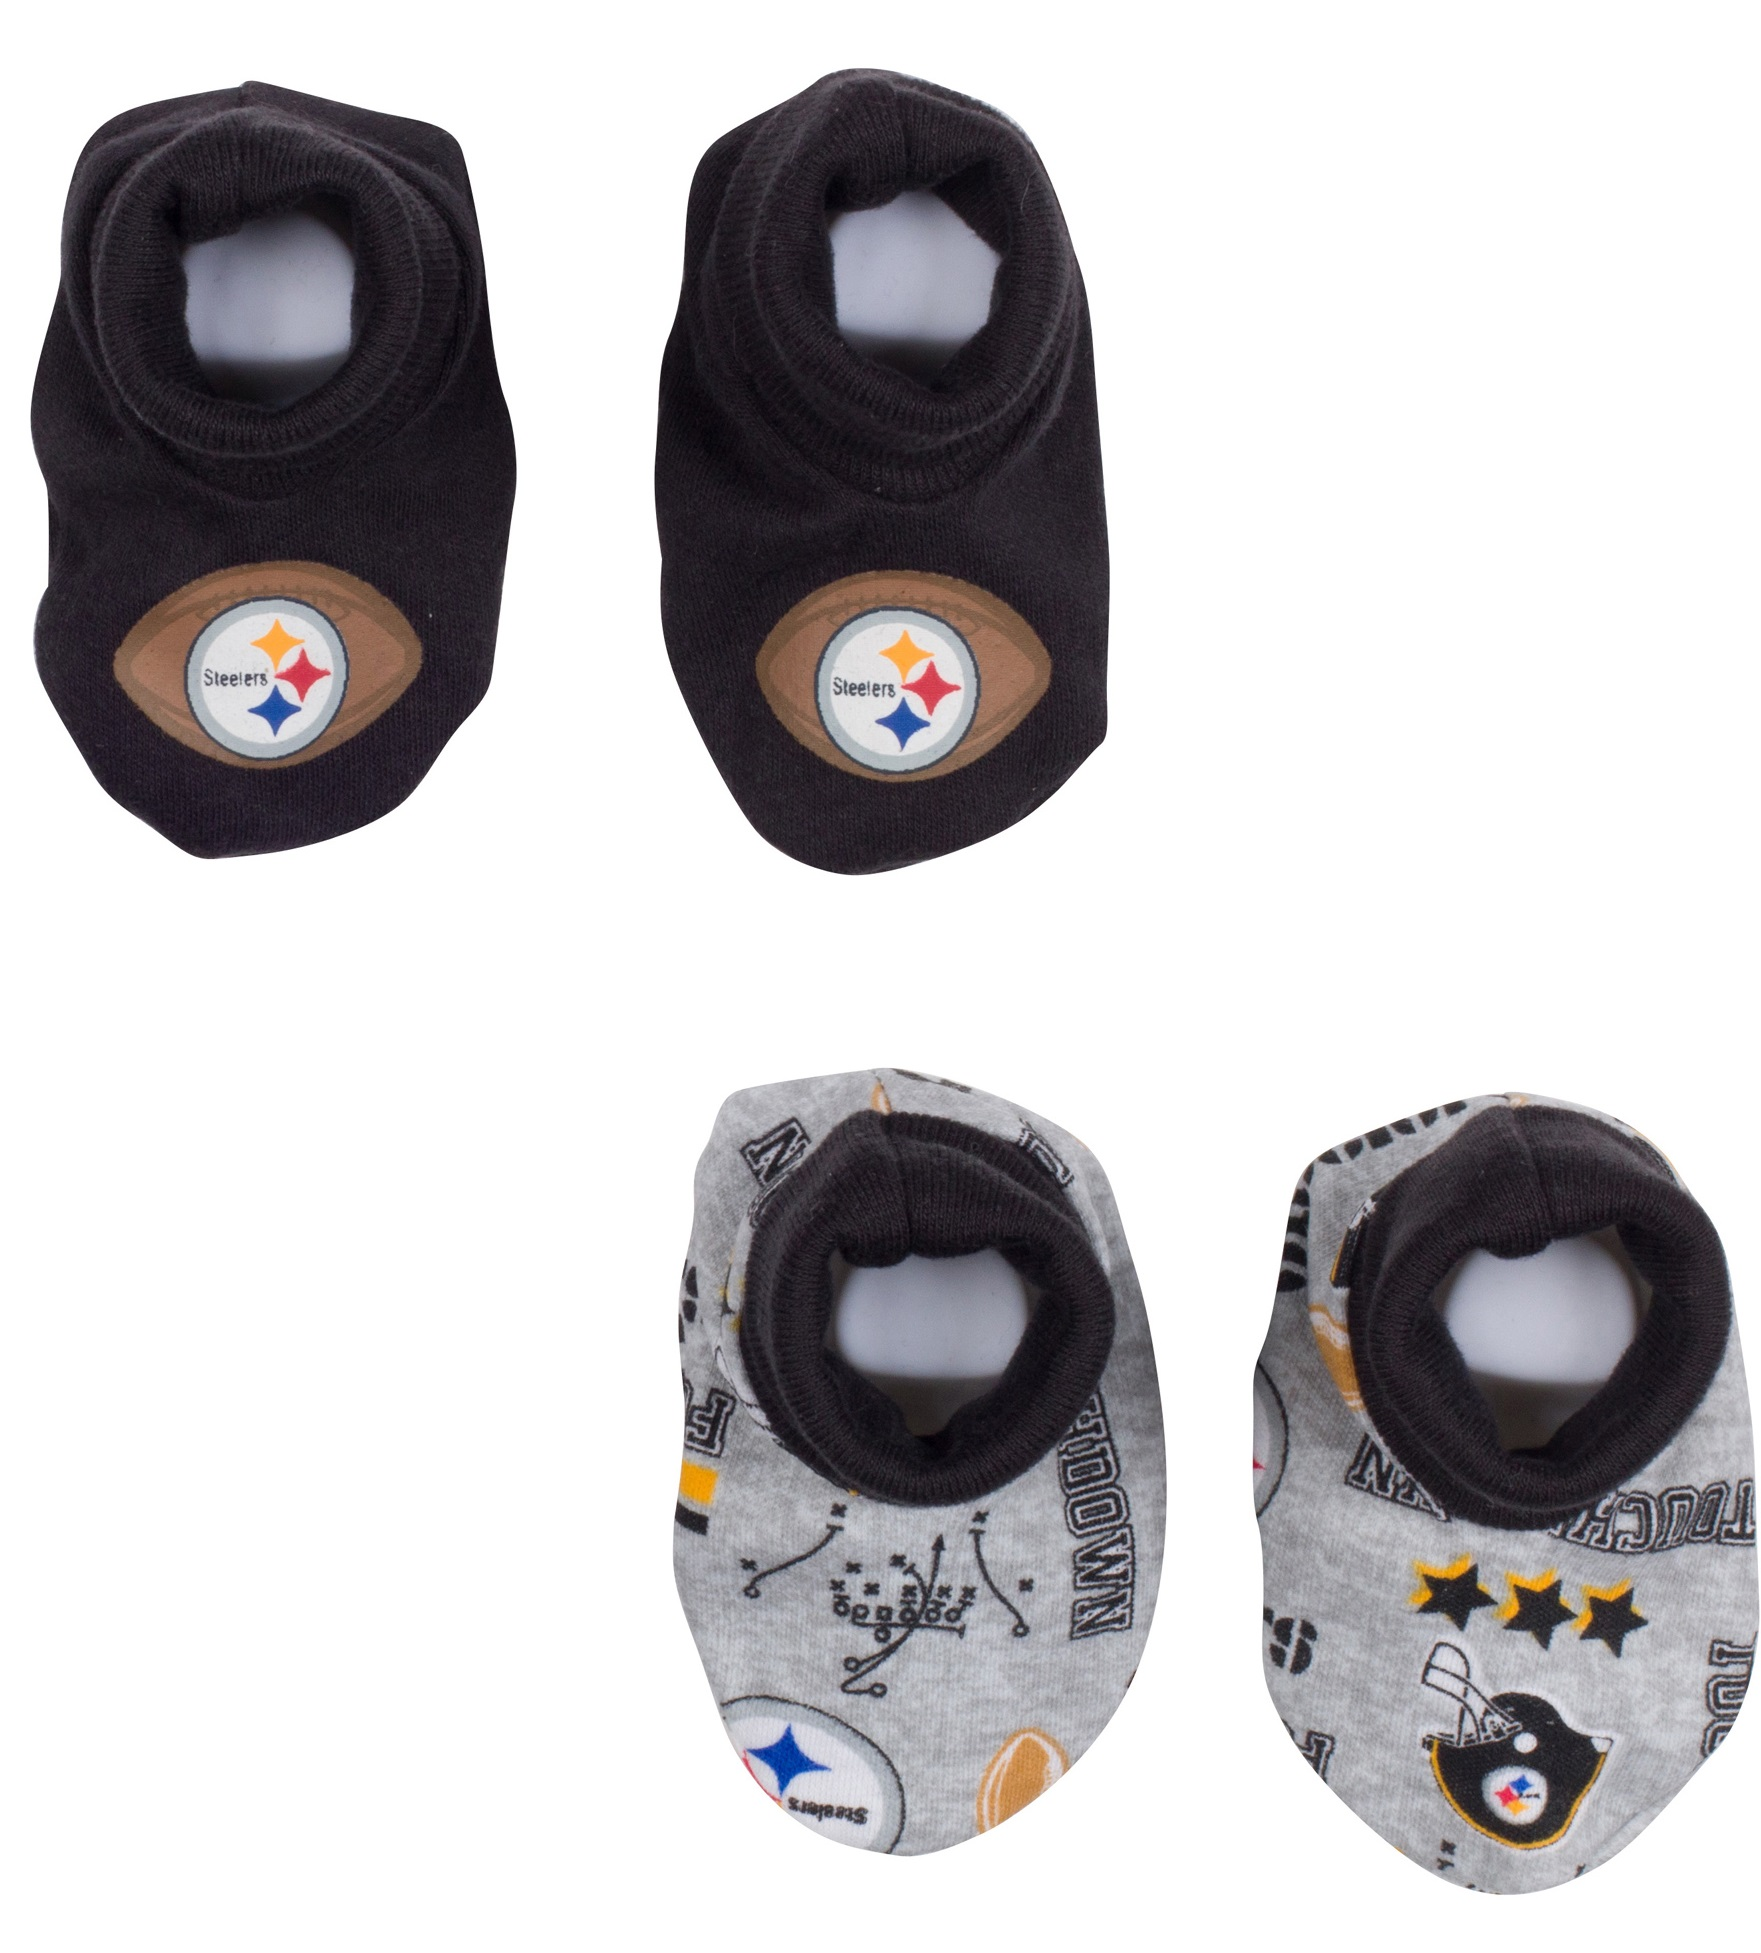 steelers-baby-2hats-2bootie-set-1520-booties.jpg